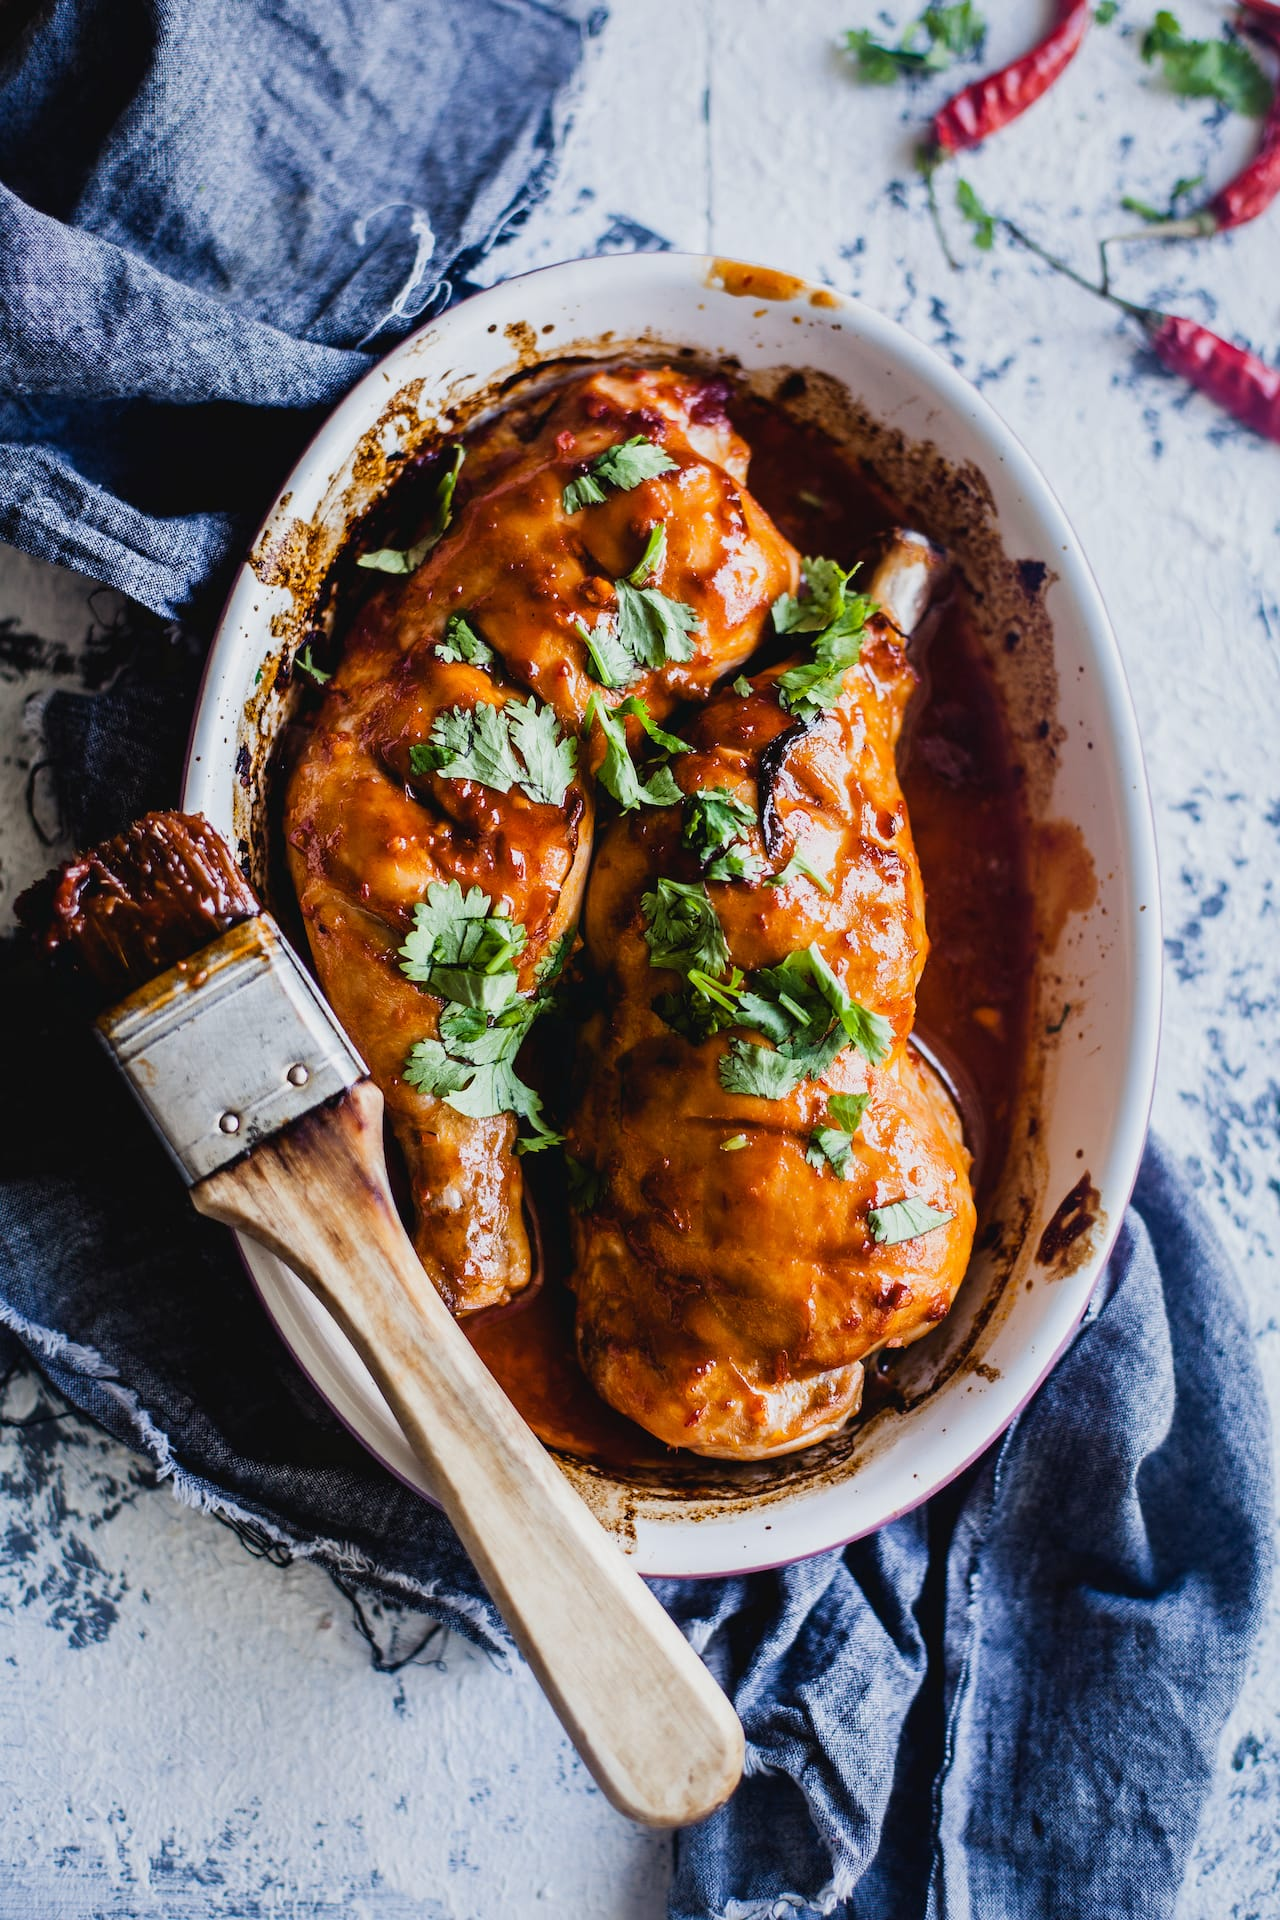 Sweet And Spicy Chicken Thigh | Playful Cooking